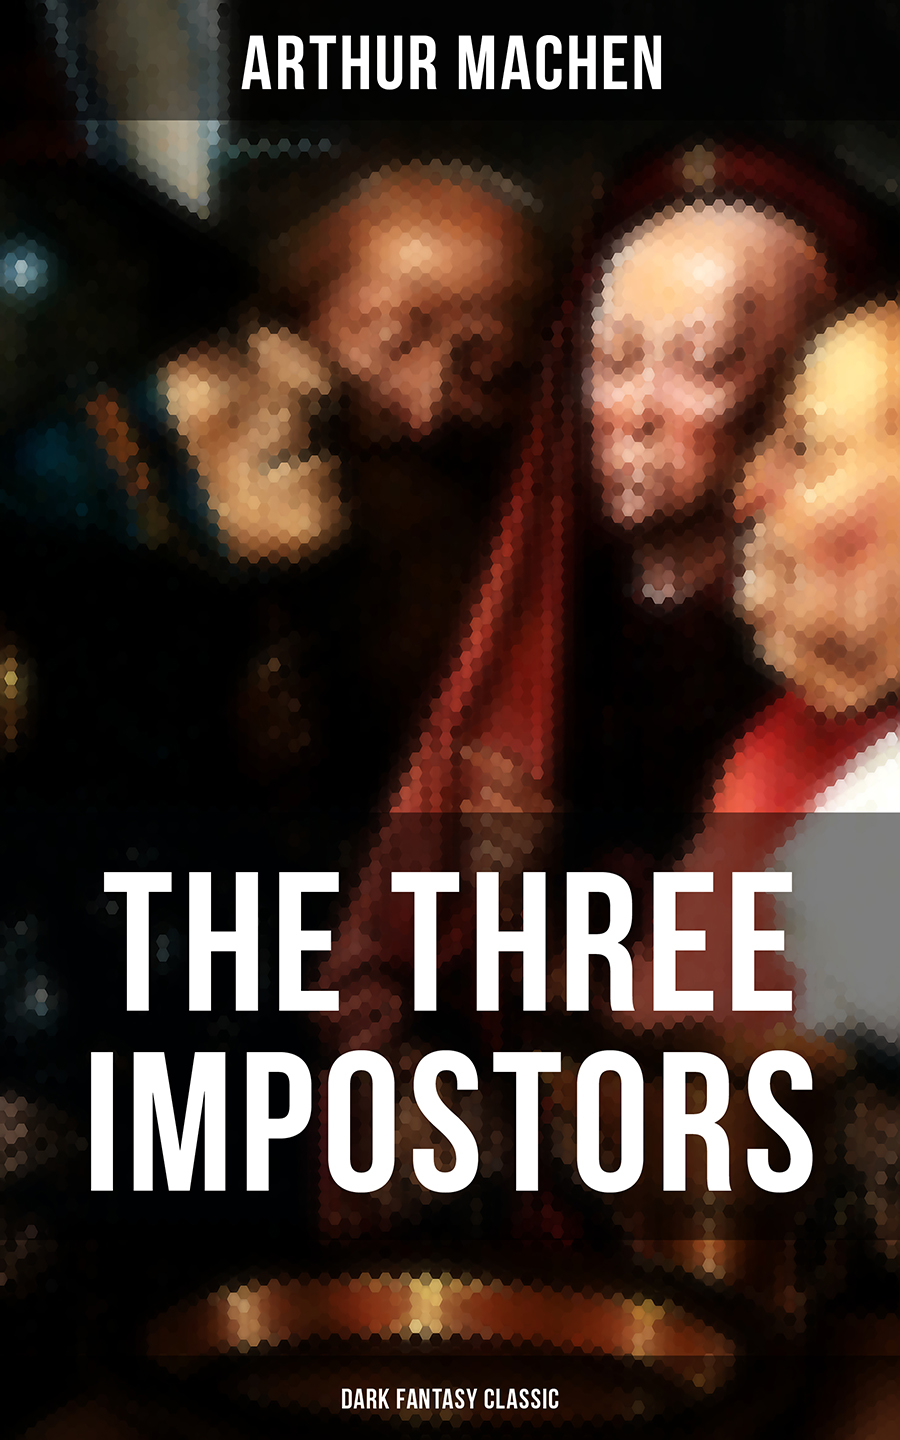 Arthur Machen THE THREE IMPOSTORS (Dark Fantasy Classic)